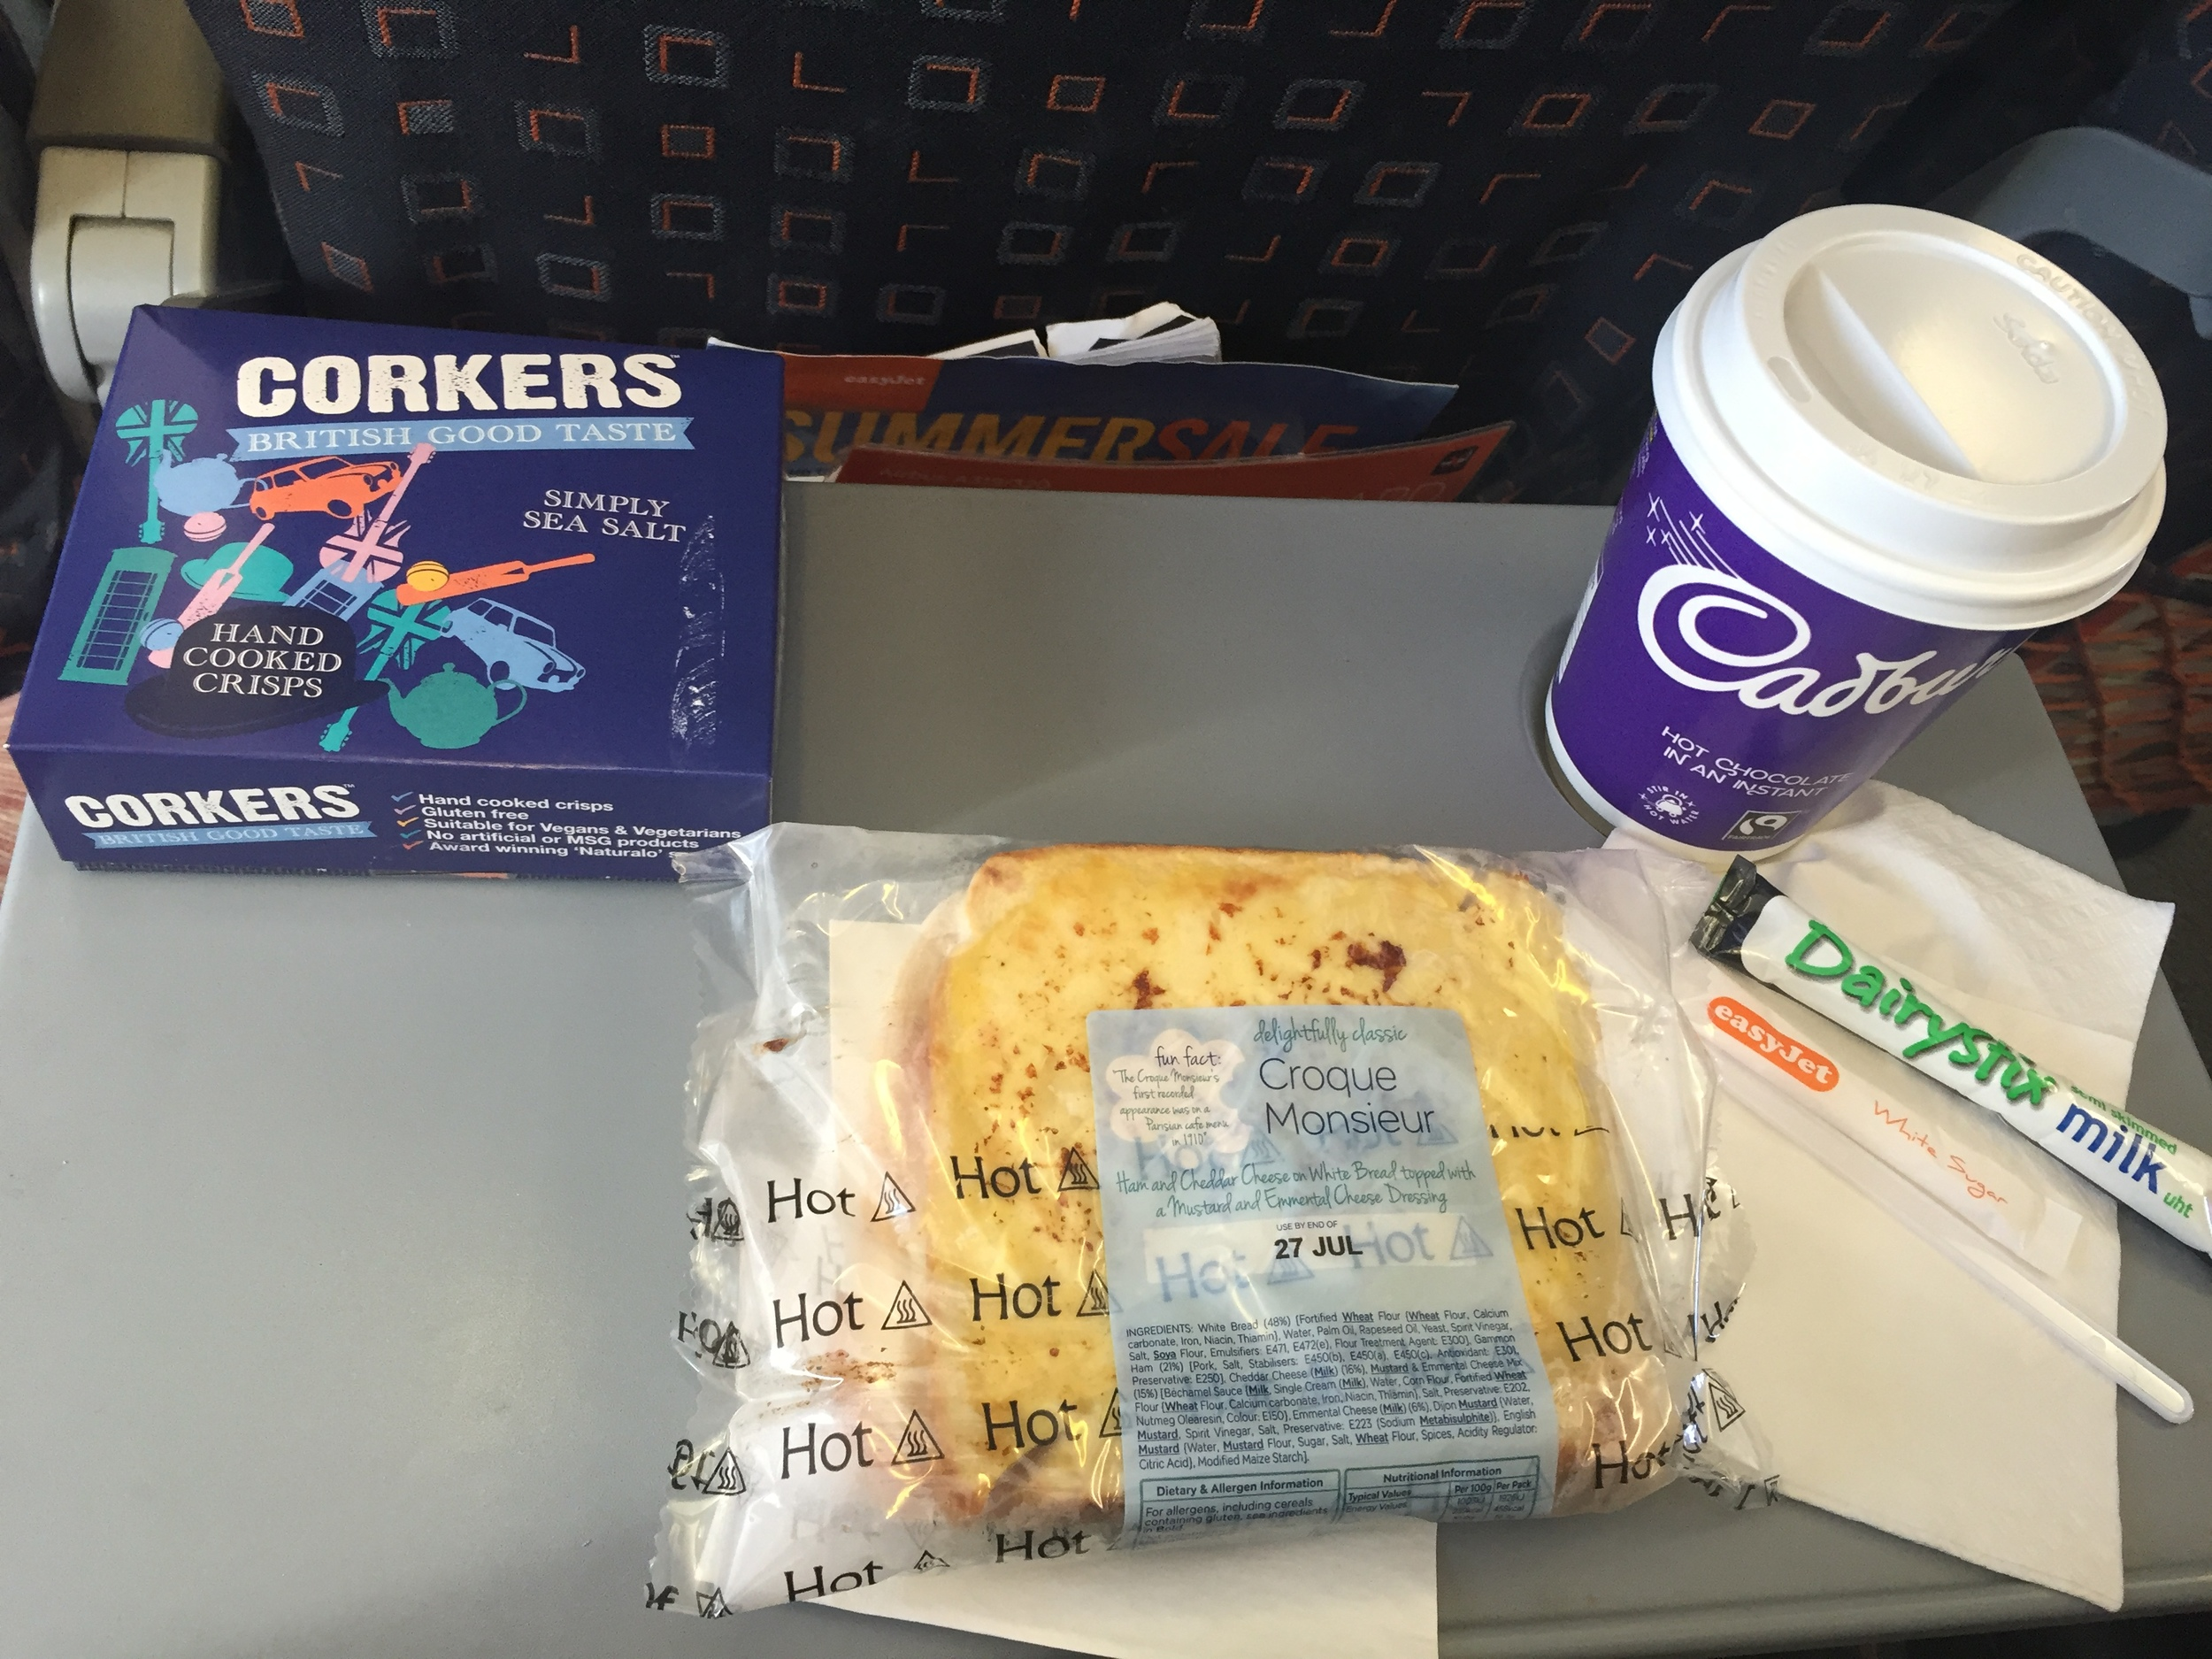 A ham & Cheese sandwich, hot chocolate and chips cost less than 10€ in an EasyJet Aircraft